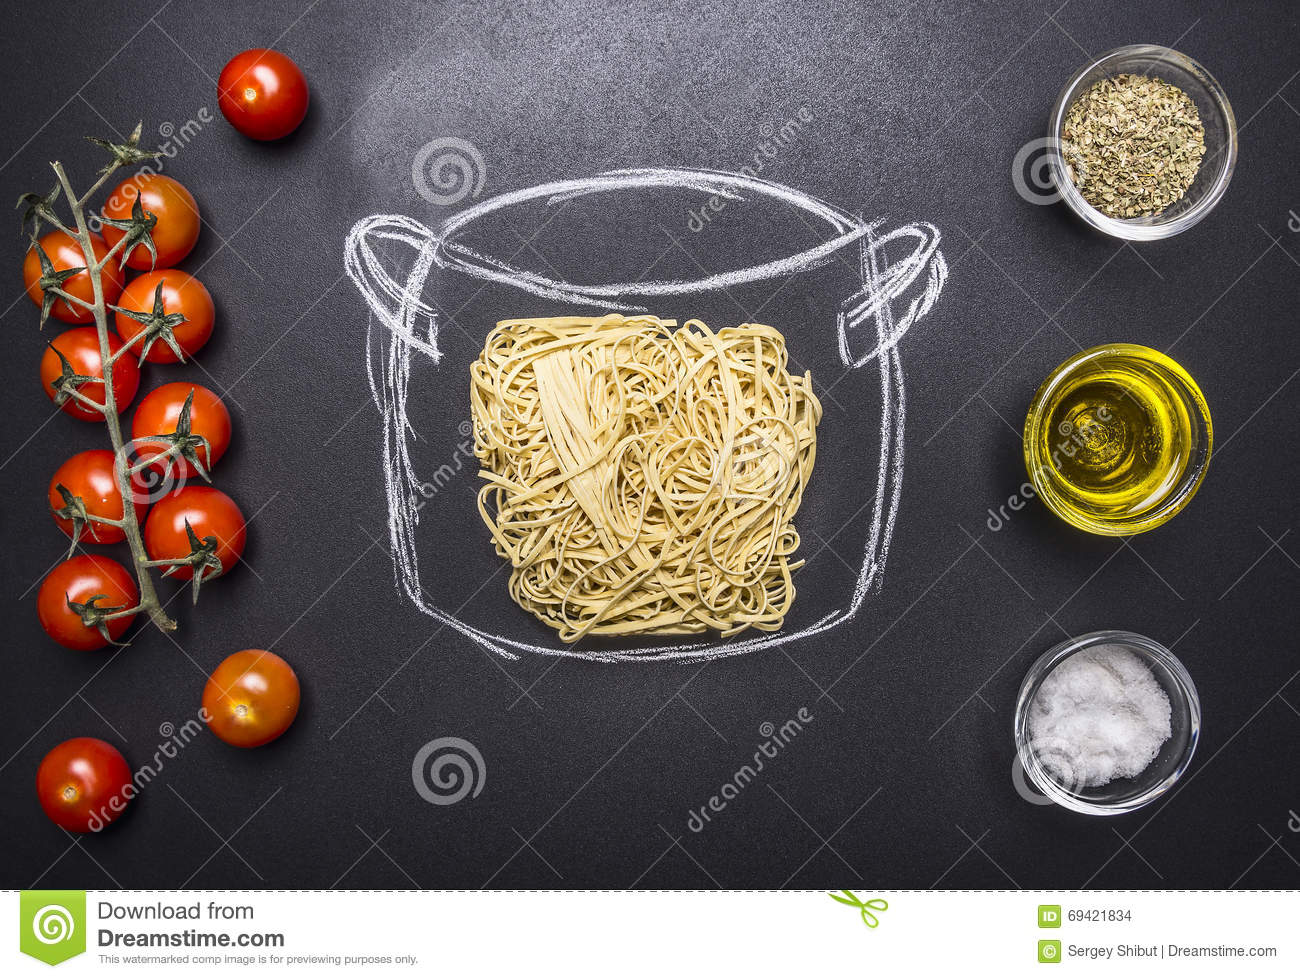 Vegetarian cooking pasta, painted pot, cherry tomatoes, Oil and seasonings wooden rustic background top view